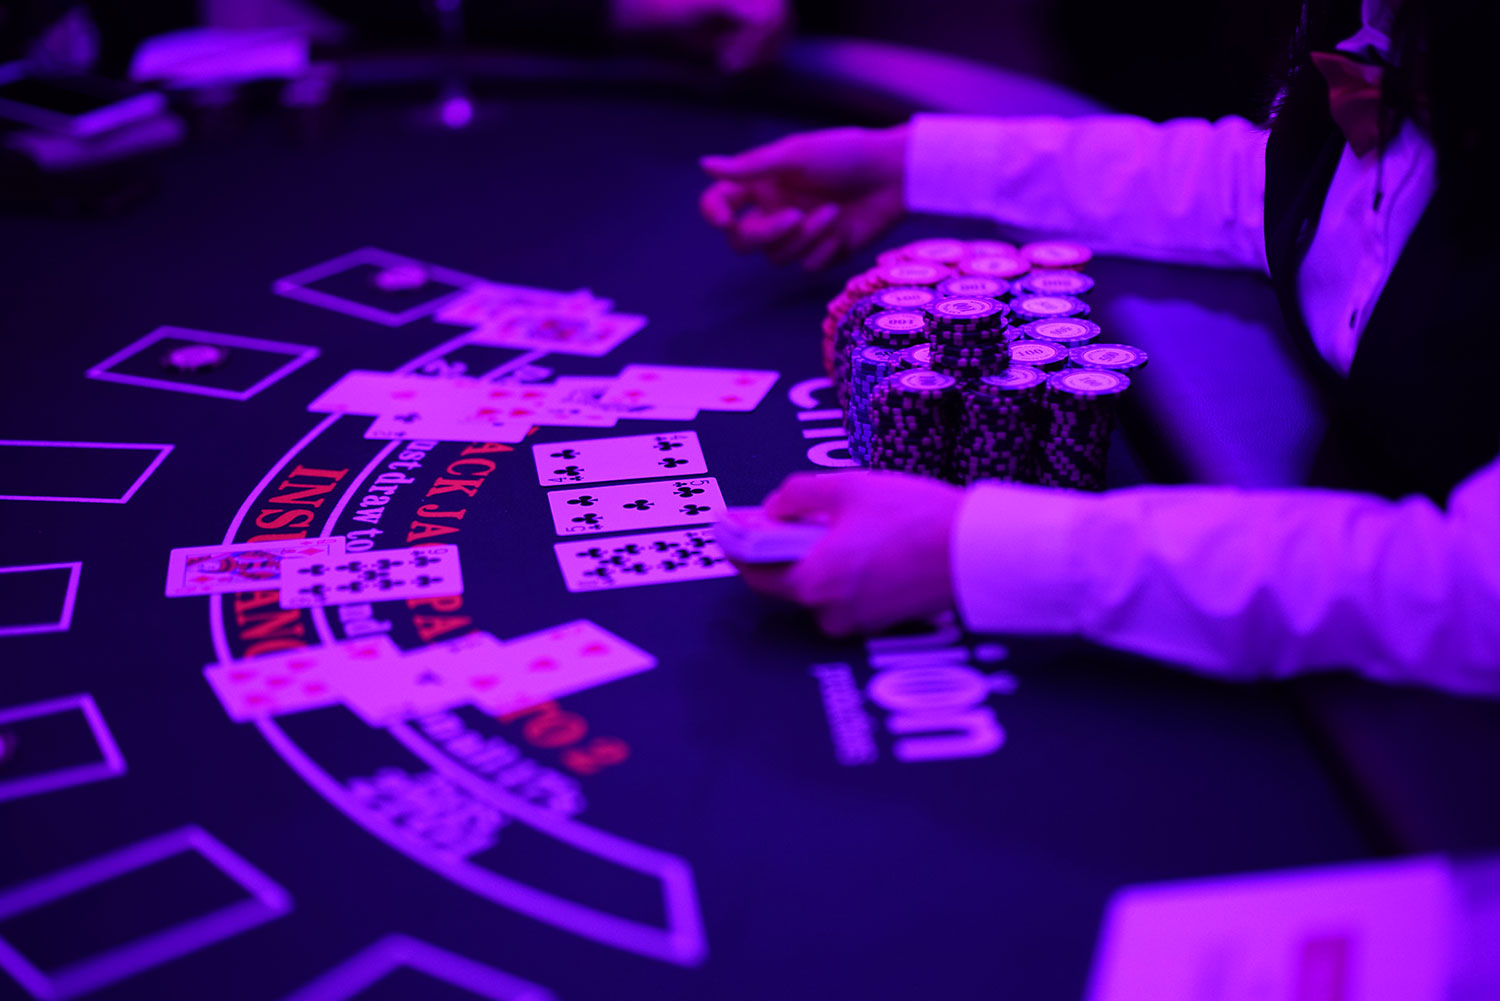 Casino game rental Hong Kong is our mission. Casino games are fun for event entertainment. We provide a wide variety of casino gaming tables, casino dealers and casino chips.